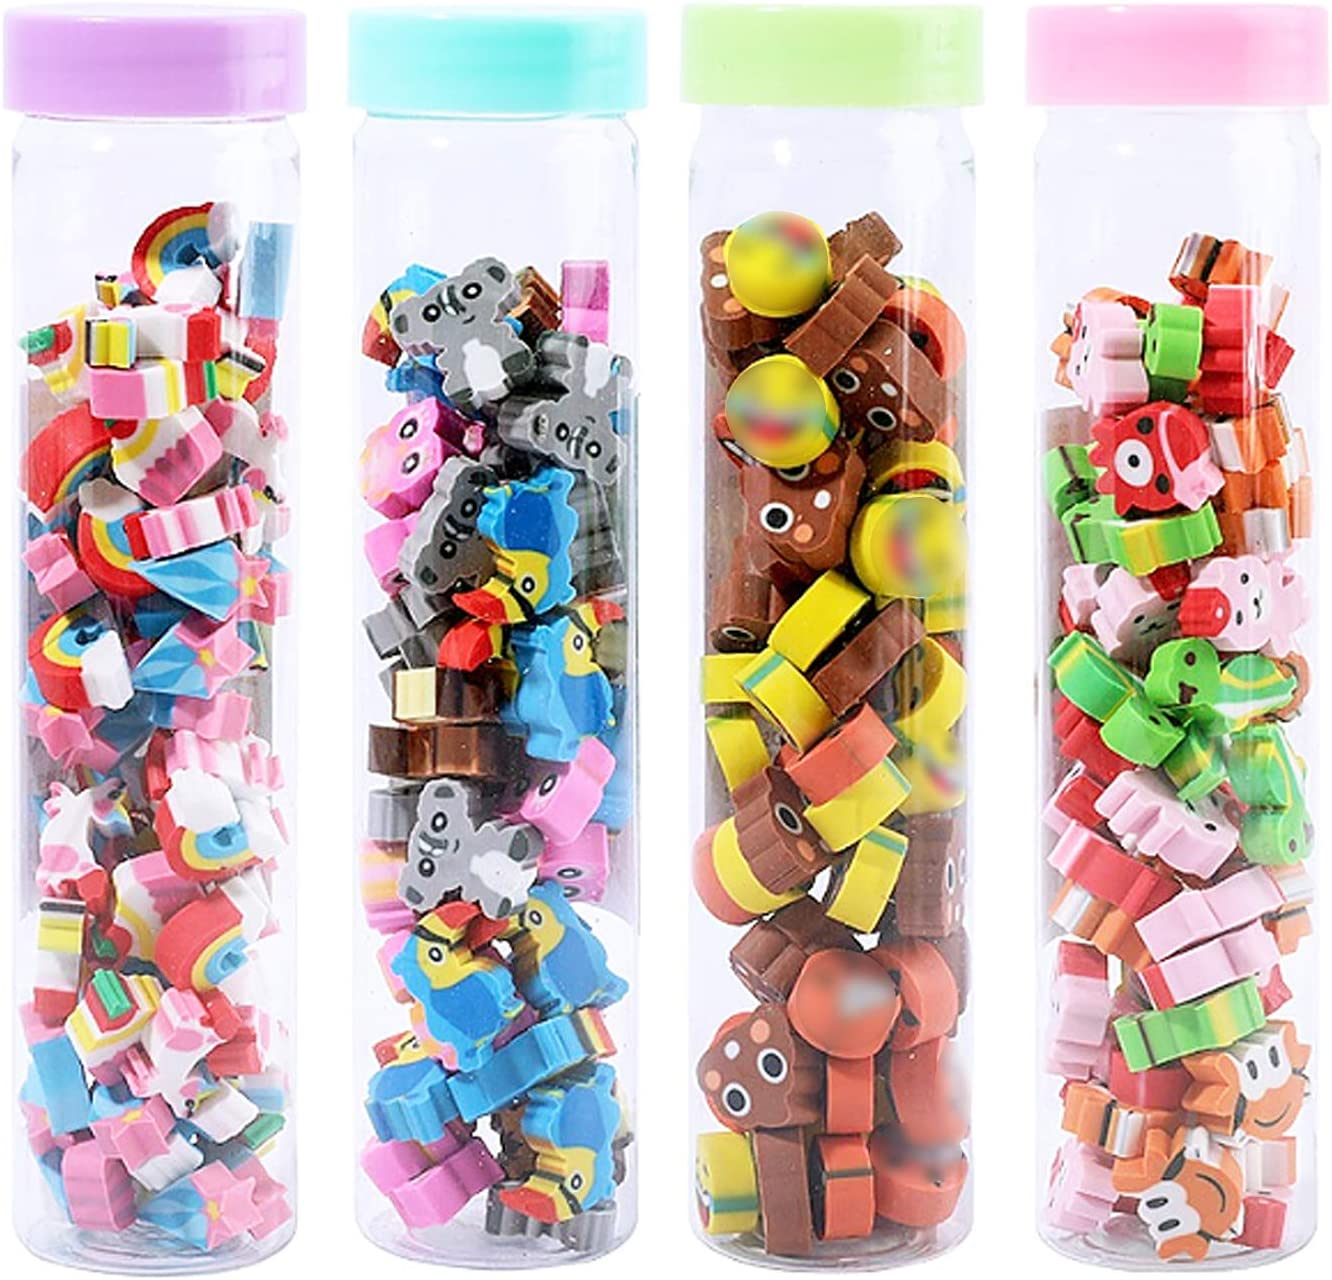 Dreamm 240 Pieces Mini Erasers Bulk Assortment in Cylinders Animal Food Emoticon Mini Pencil Erasers for Children Party Favors School Student Prizes for Kids